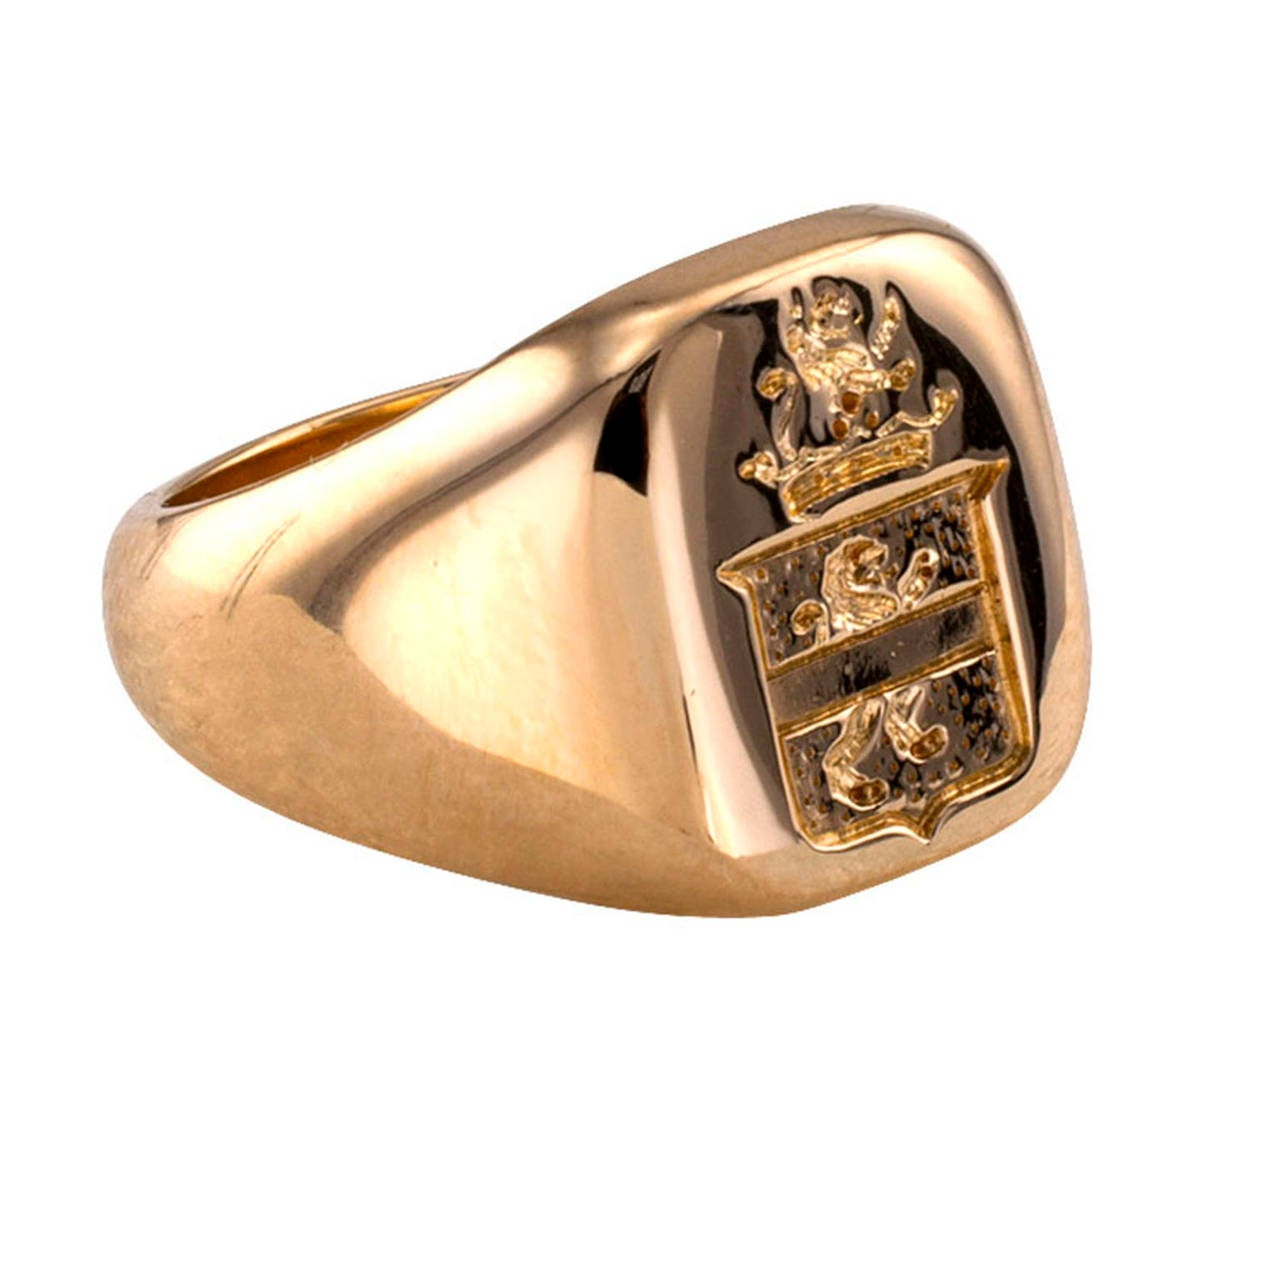 Tiffany And Co Crest Gold Signet Ring At 1stdibs